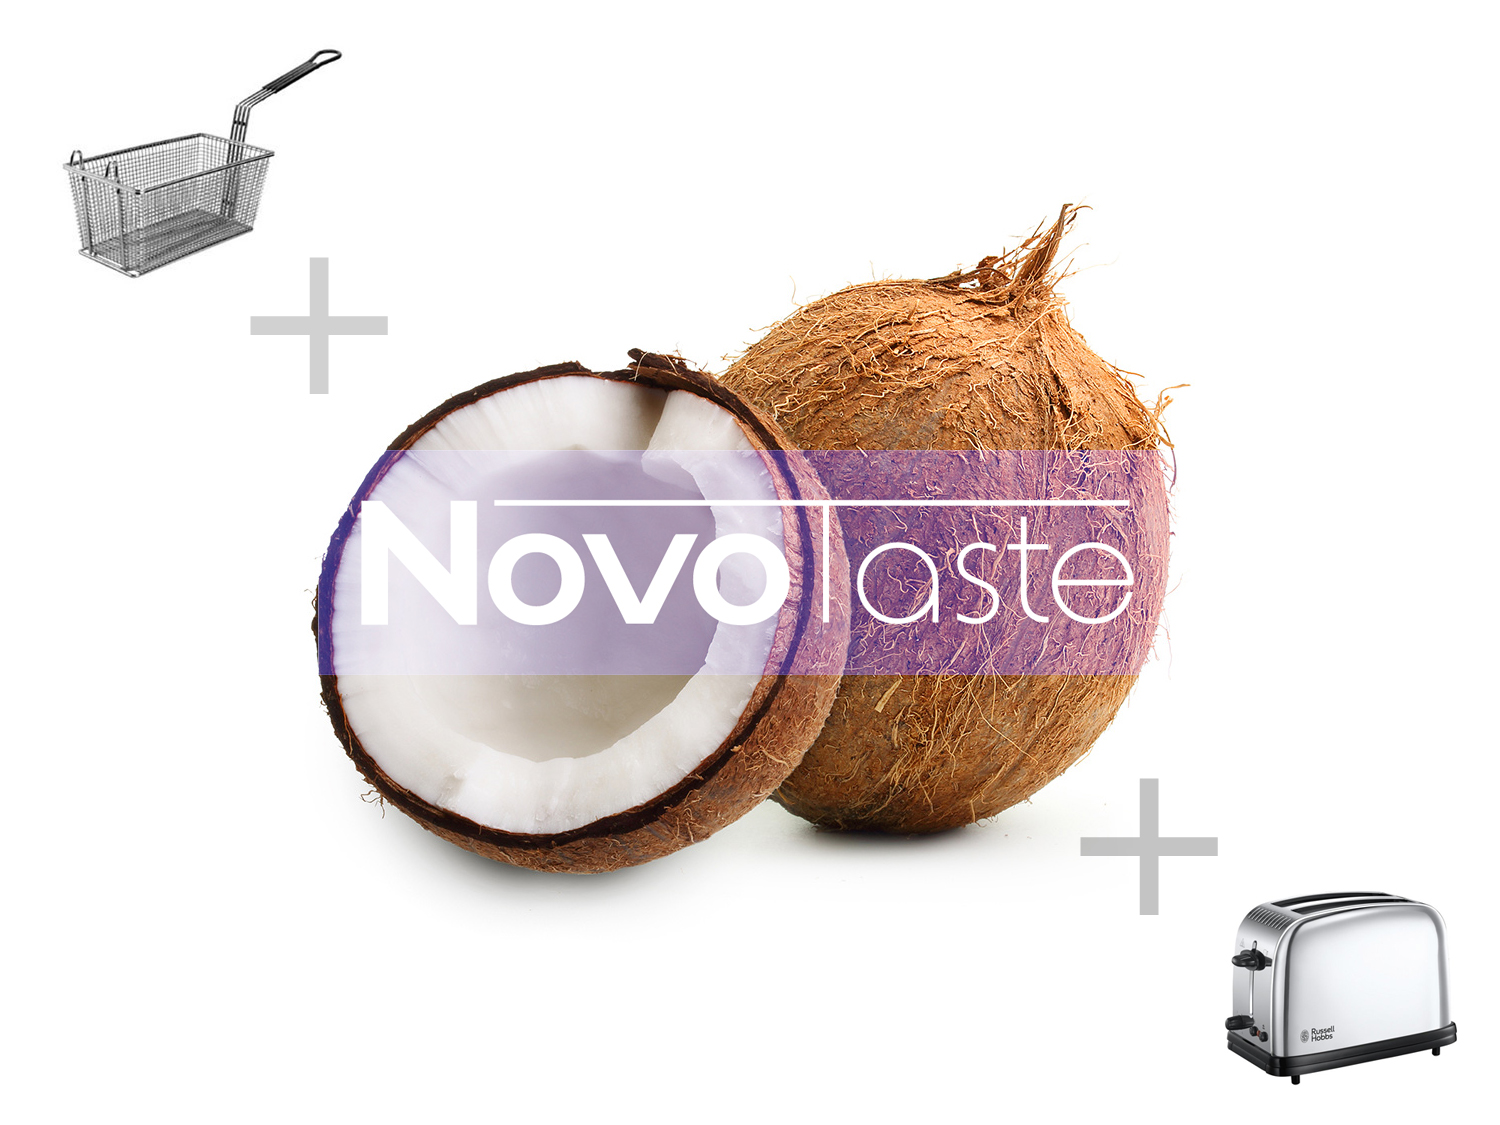 Coconut flavours – Fried or toasted?